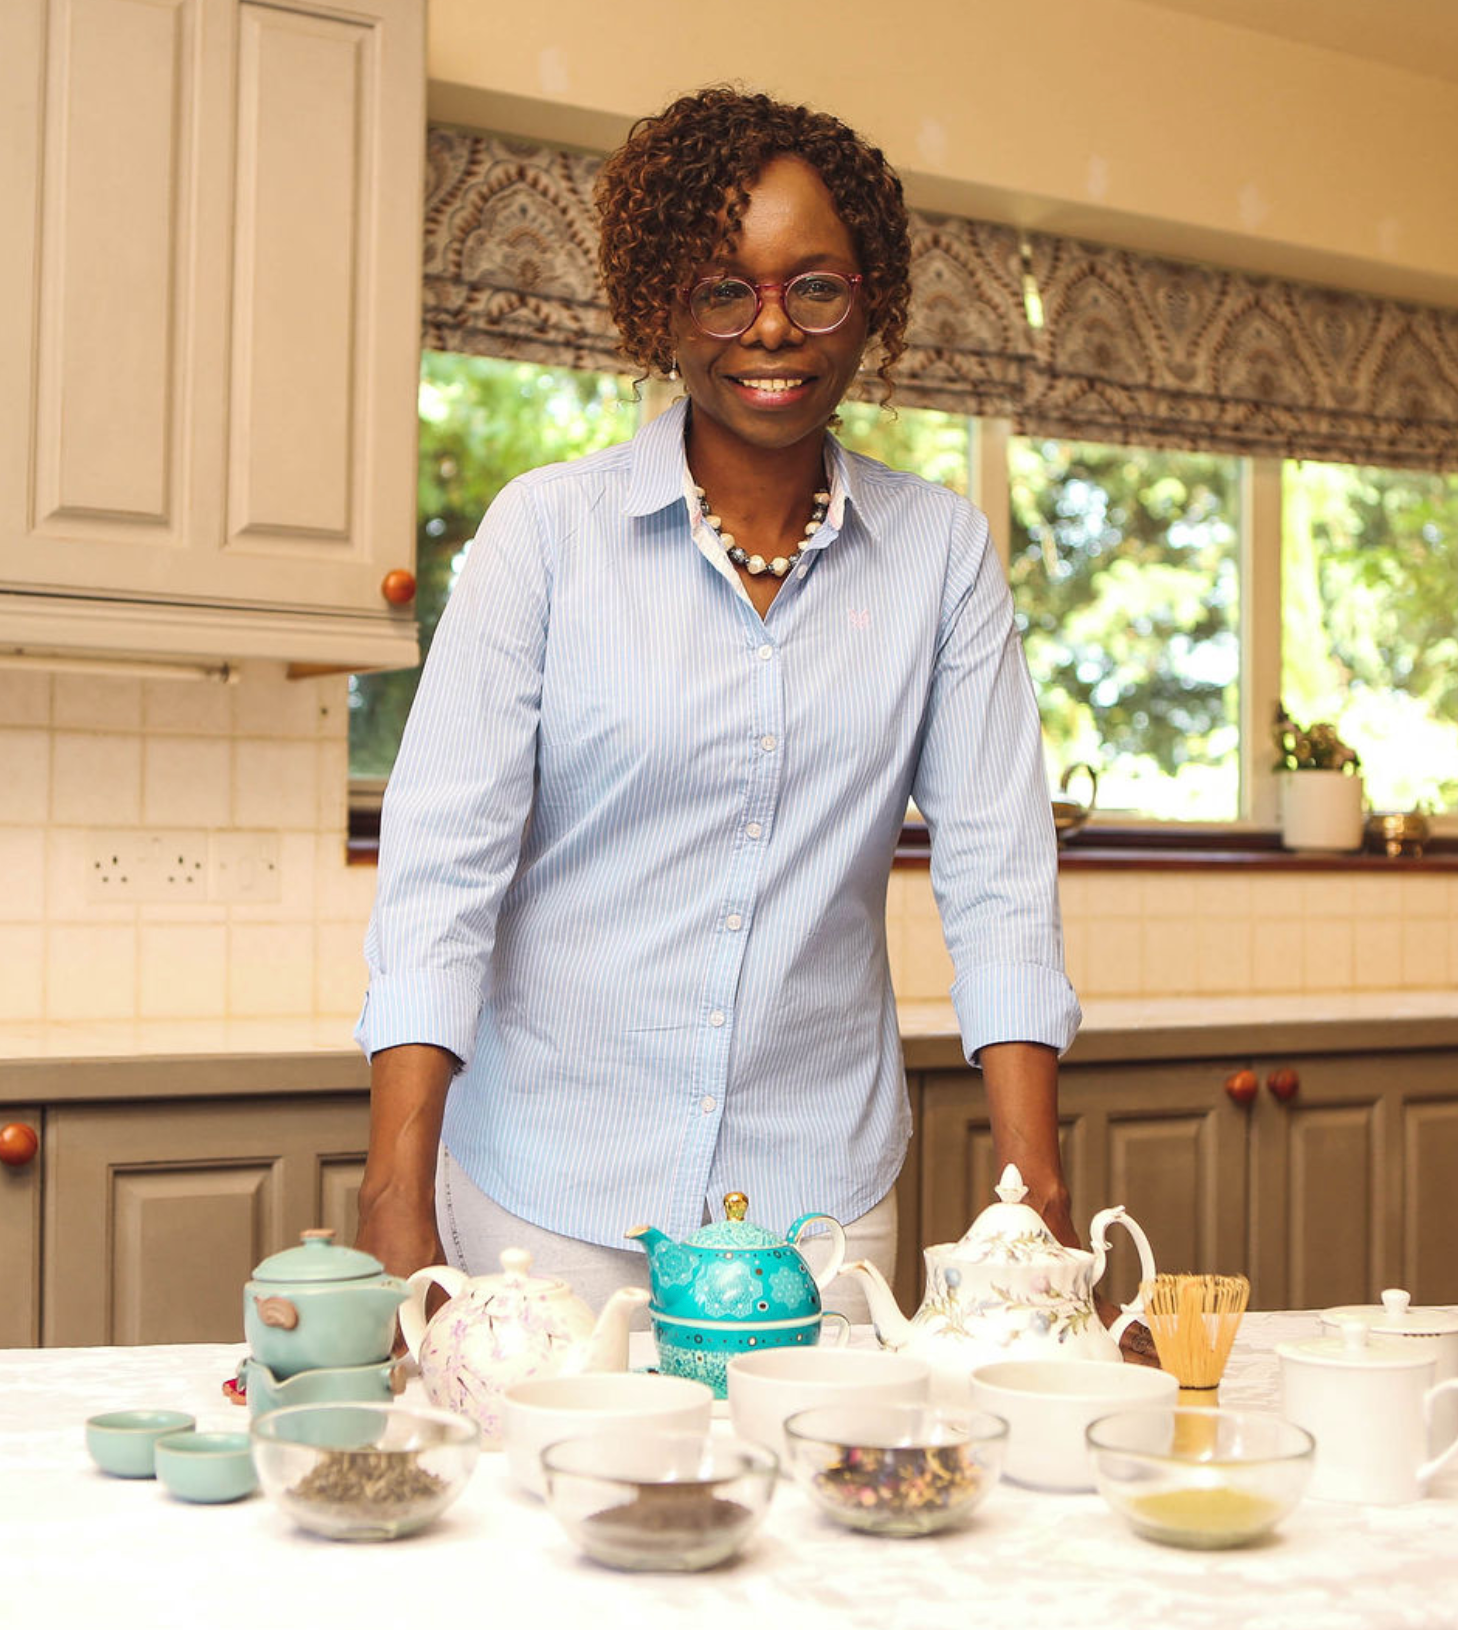 Founder and director Joyce Maina with tea accessories including teapots, loose tea and a tea whisk.